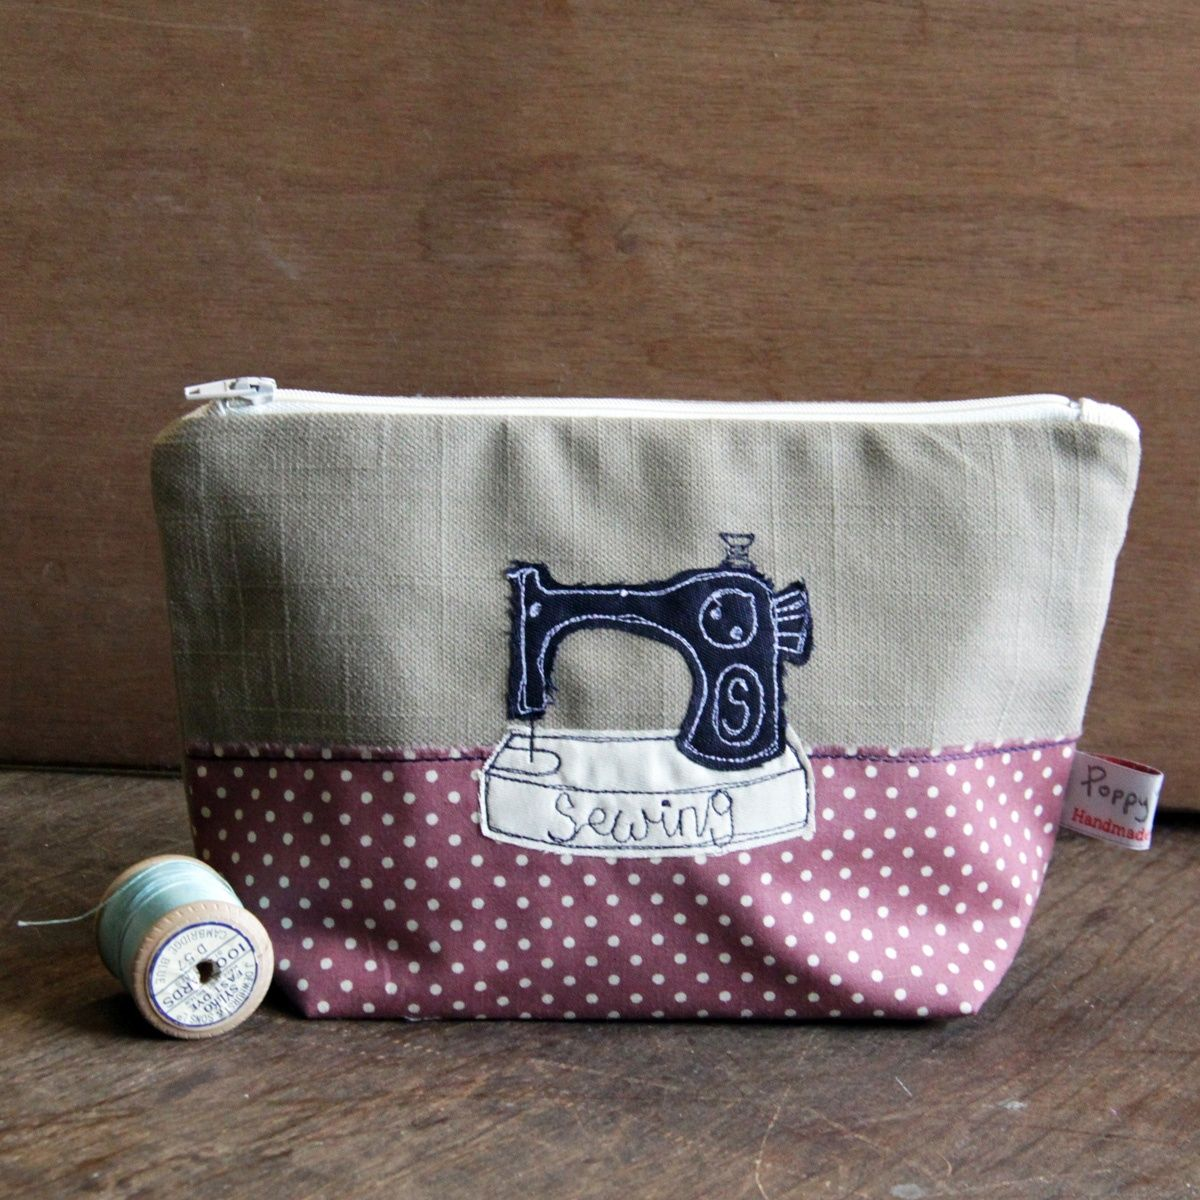 Sewing big make up bag Sewing machines best, Free